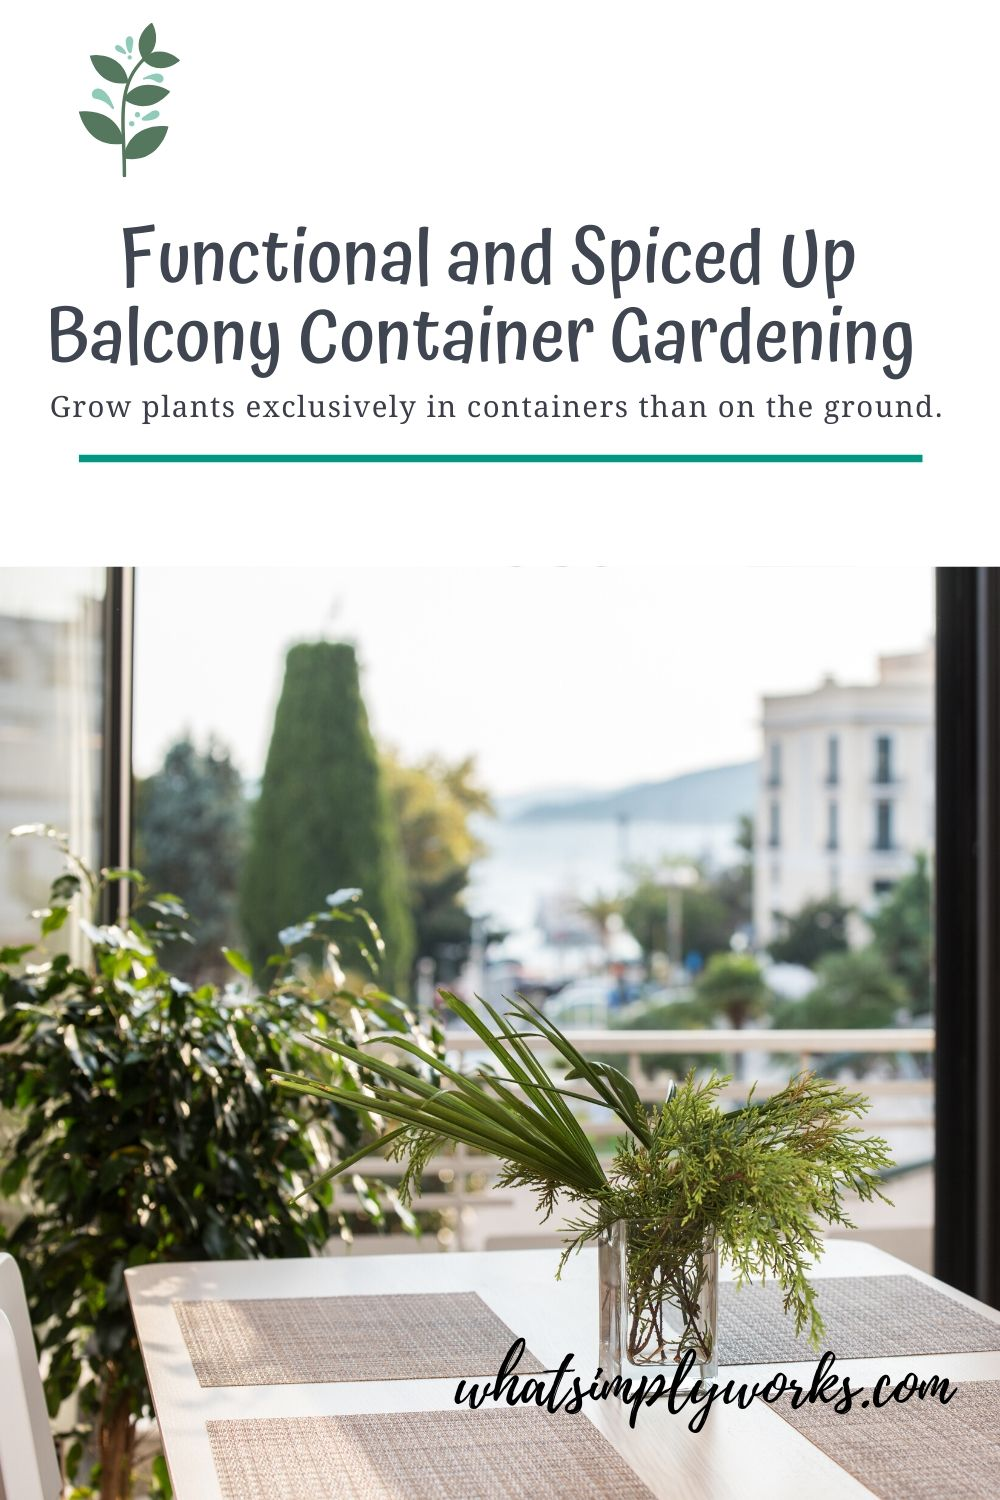 What is container gardening? Simply put, it is the practice of growing plants exclusively in containers instead of the ground.